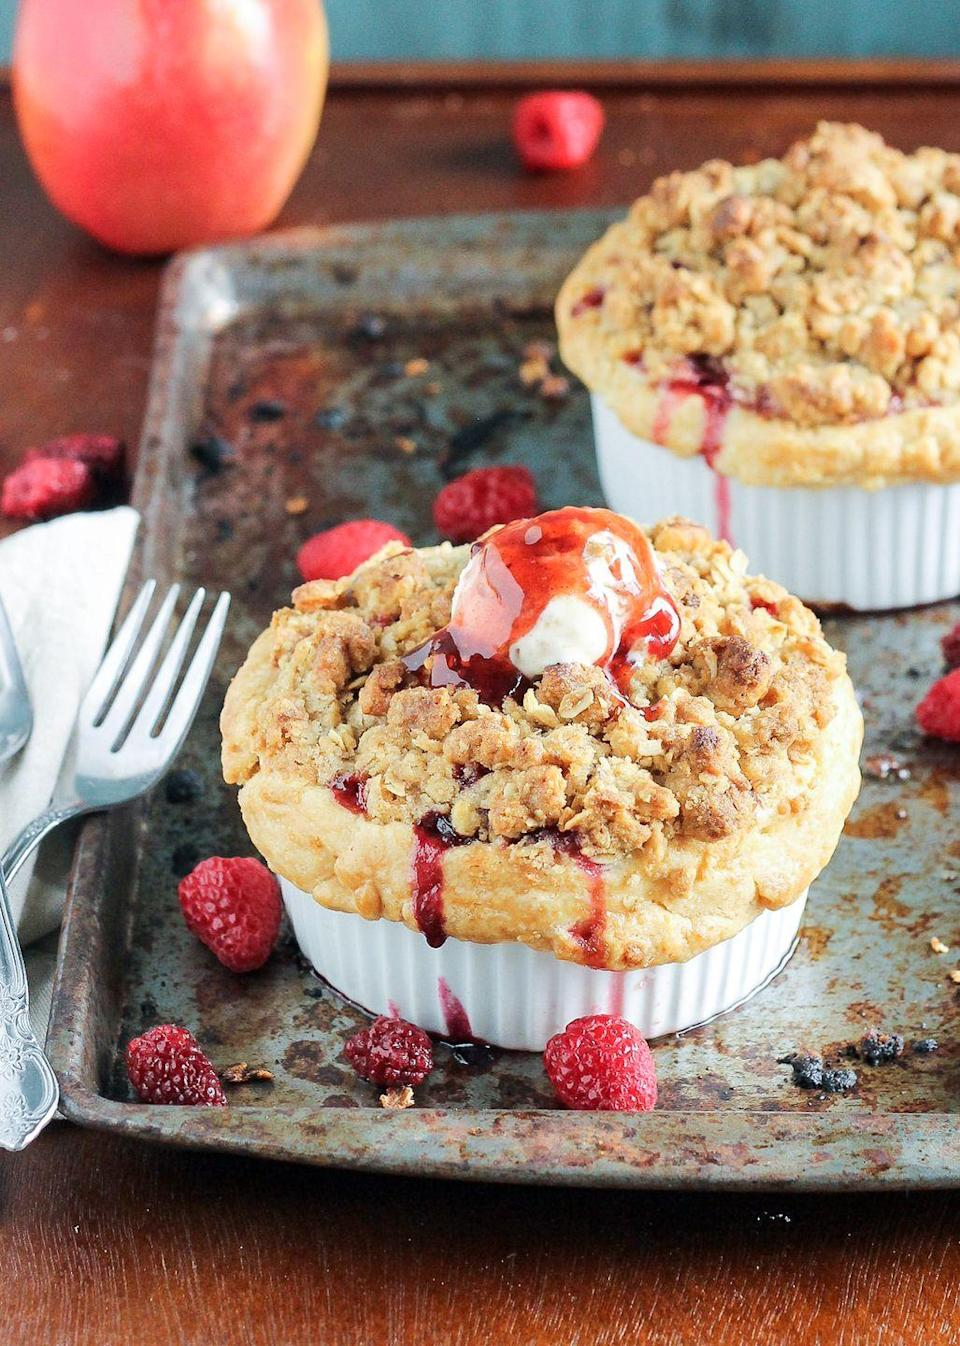 """<p>Replace with any kind of berry you'd like, but blackberries will give the most similar flavor.</p><p>Get the recipe from <a href=""""https://www.delish.com/cooking/recipe-ideas/recipes/a43506/mini-apple-berry-crumble-pies-recipe/"""" rel=""""nofollow noopener"""" target=""""_blank"""" data-ylk=""""slk:Delish"""" class=""""link rapid-noclick-resp"""">Delish</a>.</p>"""